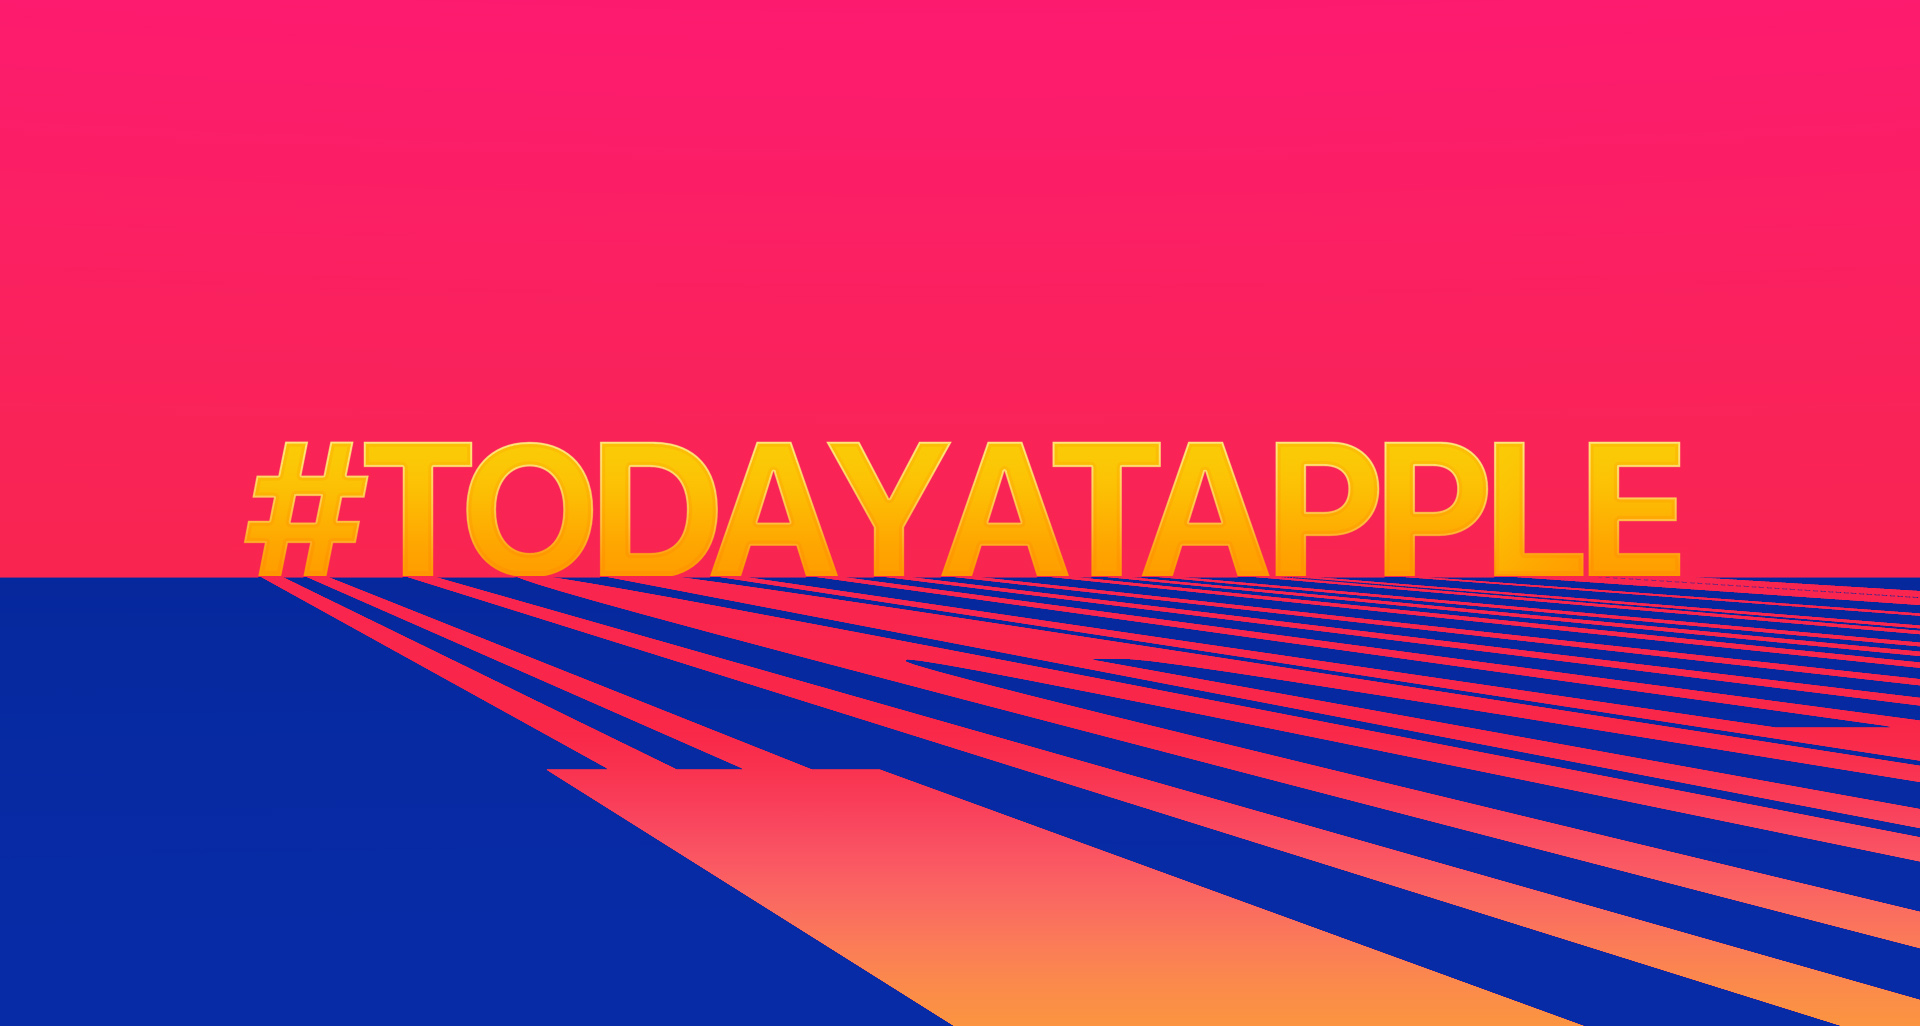 today at apple wallpaper